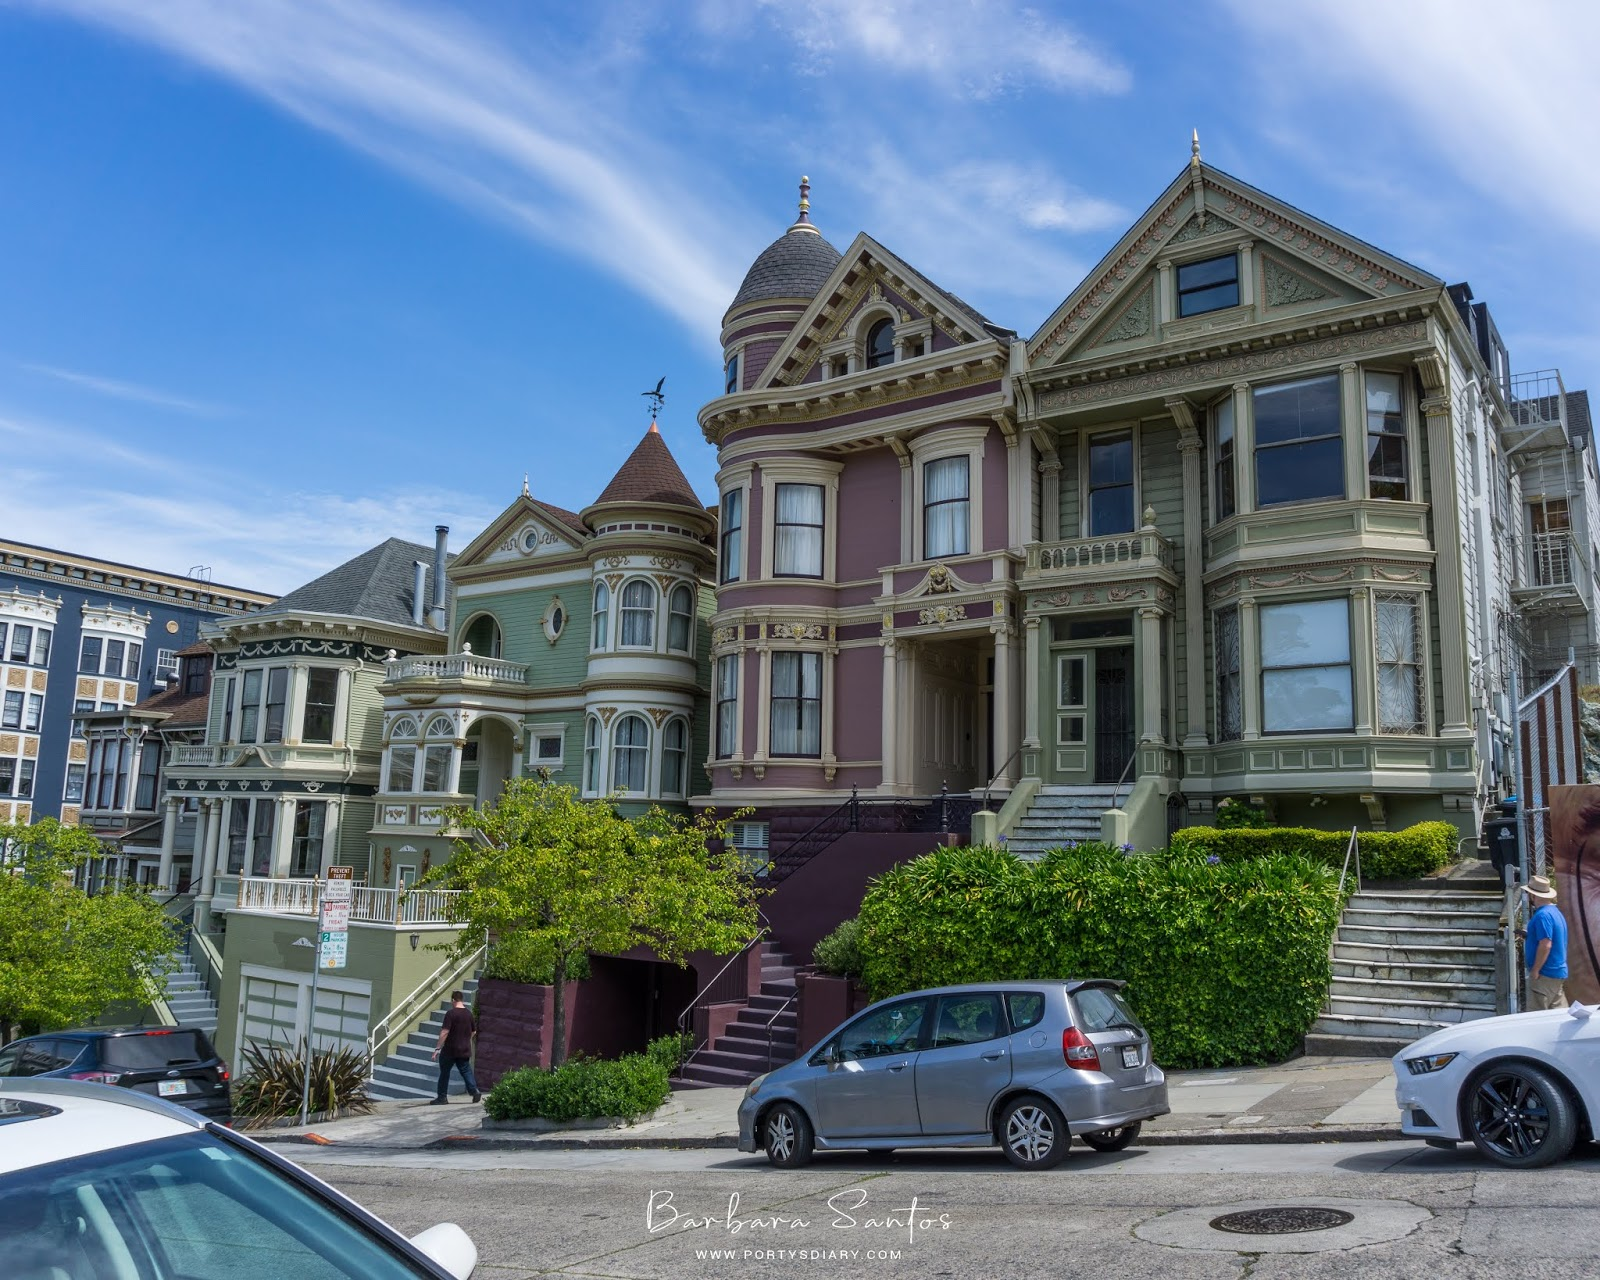 Travel - A week in San Francisco. Visiting Golden Gate Park, Ocean Beach, Coit Tower and the Painted Ladies.